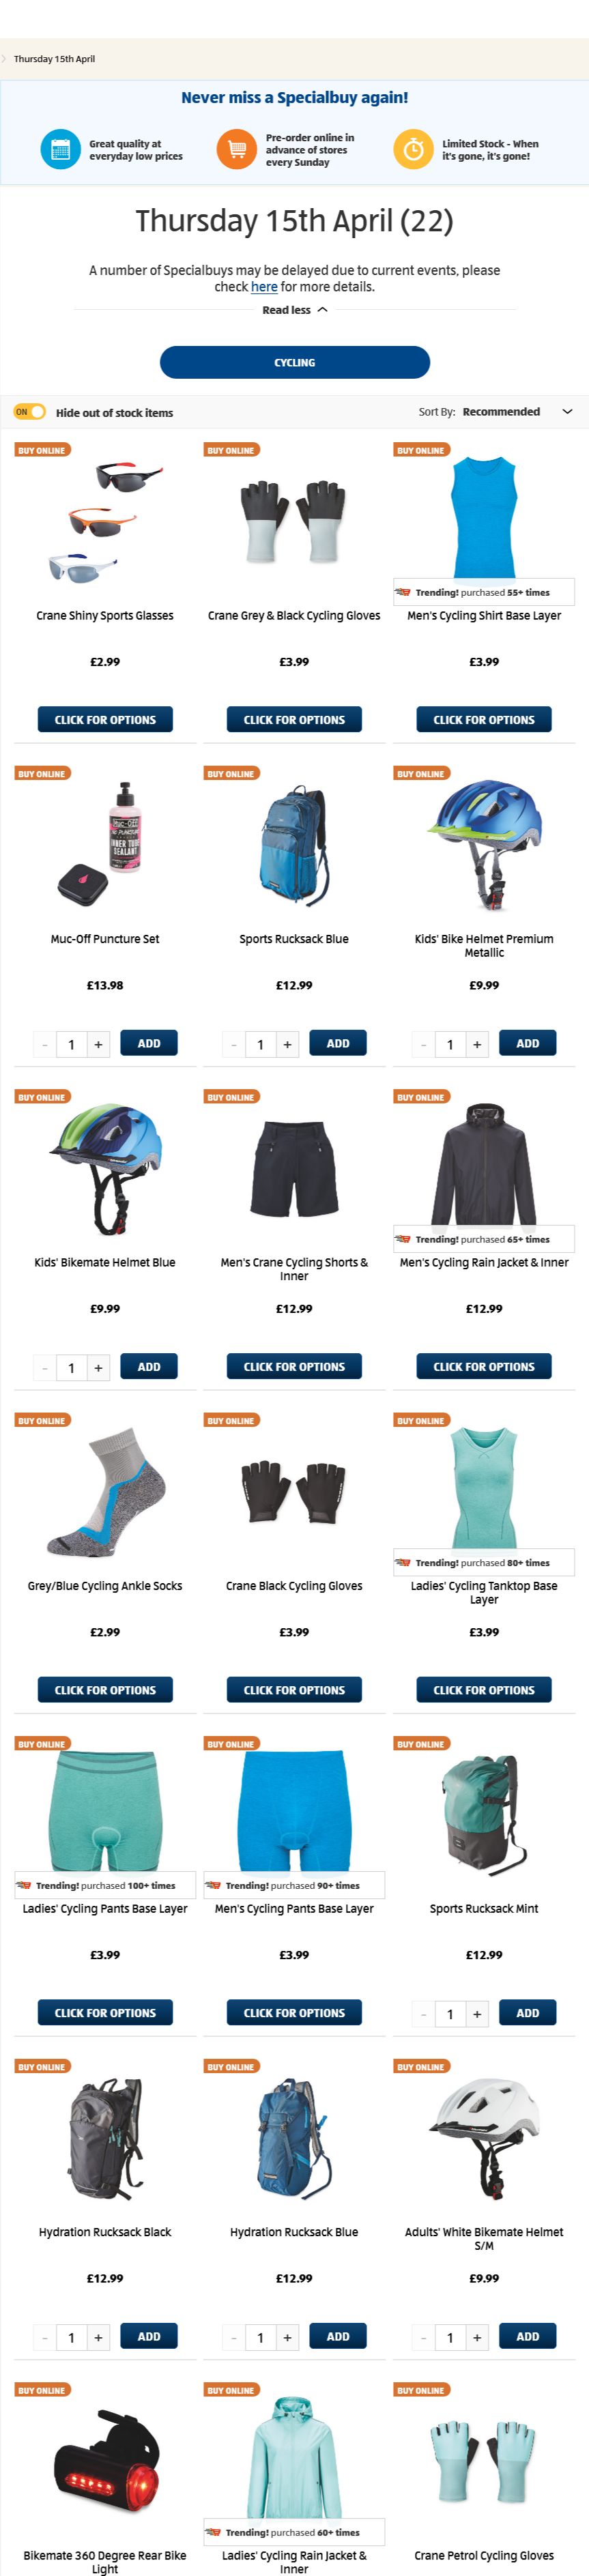 ALDI Thursday Offers Cycling 15th April 2021